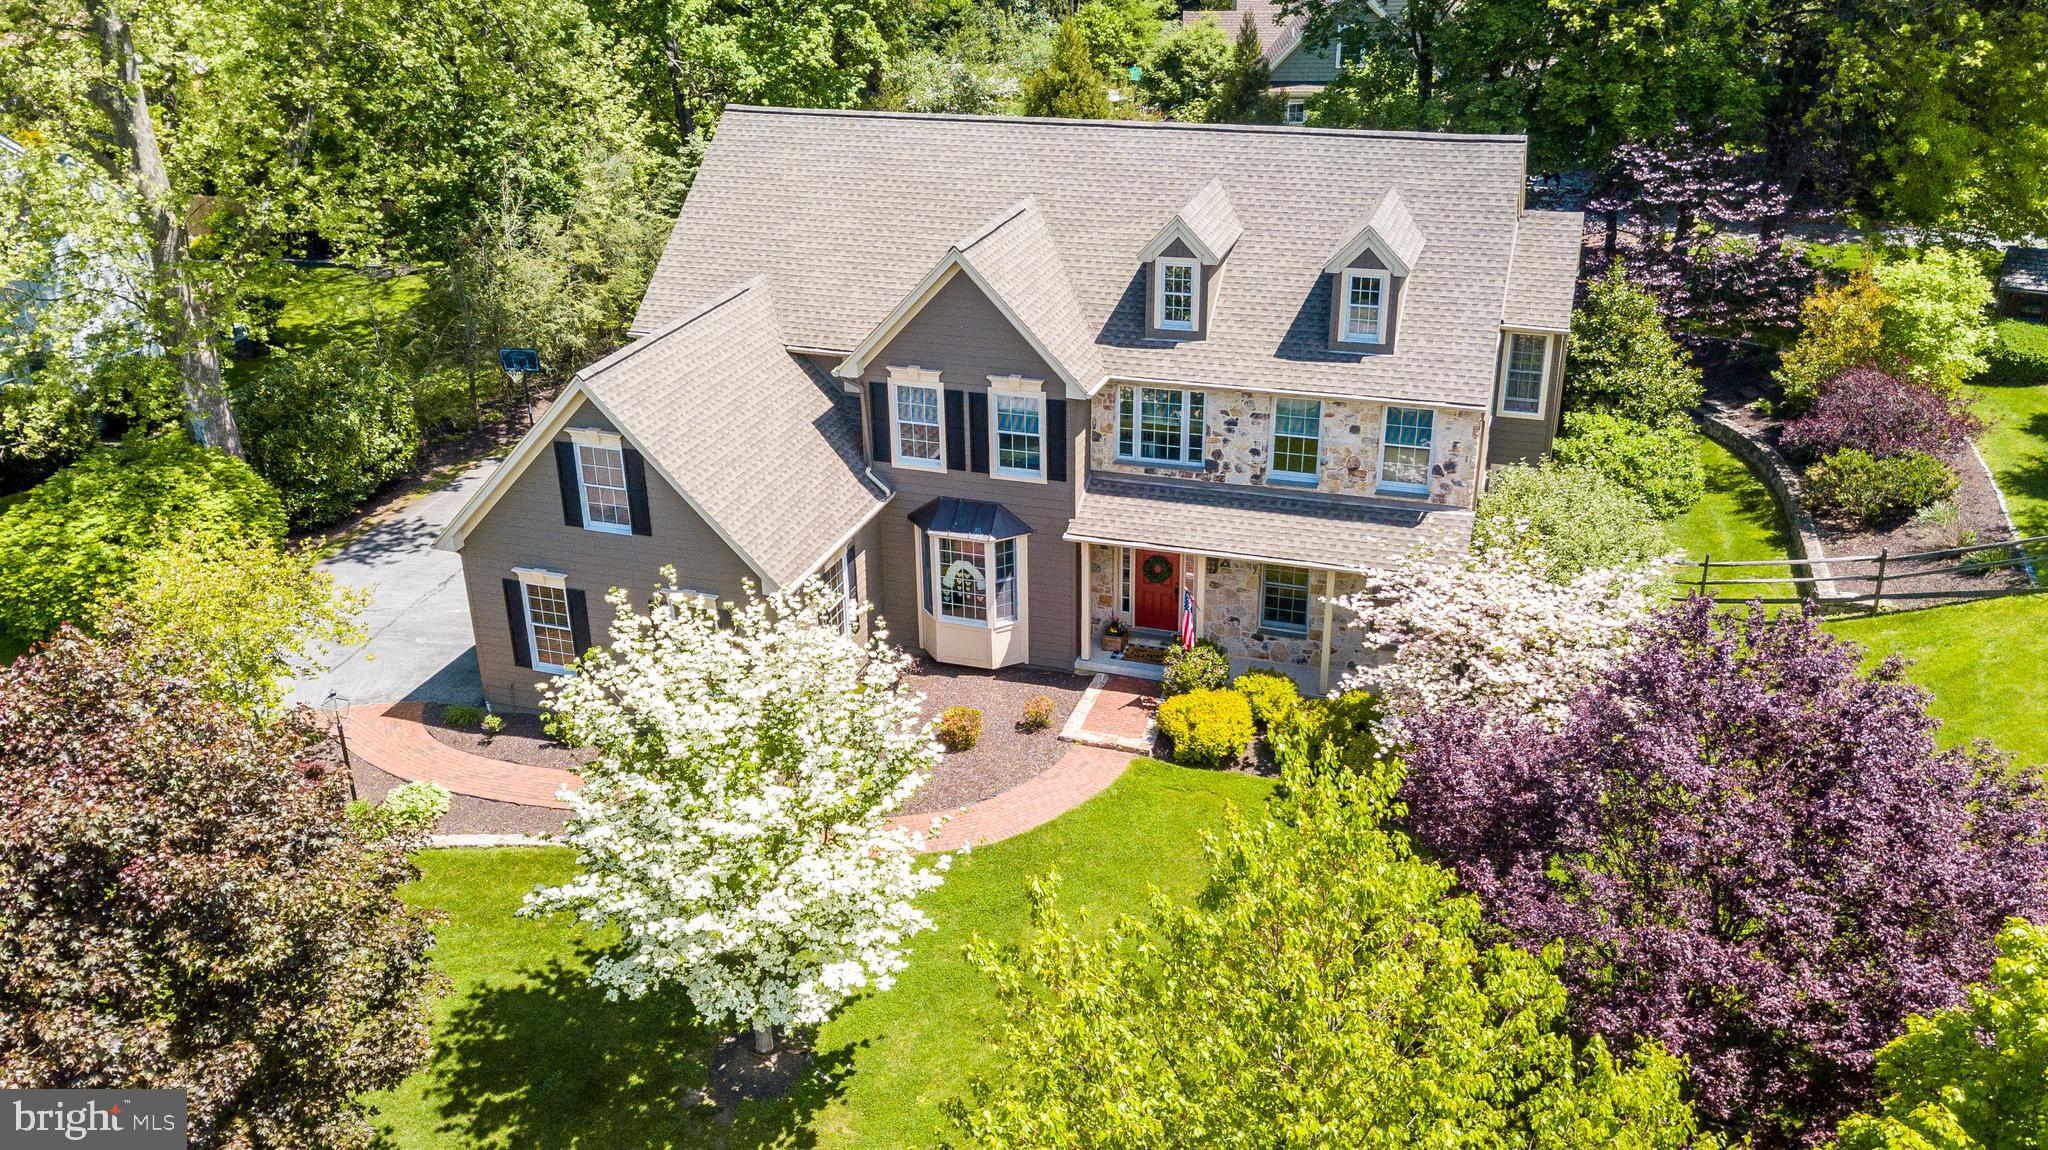 Welcome to 600 Perry Drive that is located in the desirable Wiltshire neighborhood which is an enclave of 11 homes and it is just minutes away from downtown West Chester Borough, West Chester Country Club, major routes, and it is also located in the brand new Greystone Elementary School zone. This attractive move-in ready home sits on a corner lot, with extensive landscaping and hardscaping- lots of room to entertain and enjoy! Enter from the brick walkway to the expansive foyer highlighting site finished hardwood floors throughout the main level, impressive moldings and lots of natural light. This home screams attention to detail! To the right you will find the formal living room with large windows, crown molding and access through glass french doors to the first floor study. The study could have many uses such as a studio/den or other. The formal dining room is impressive with its wainscoting, curved wall of windows, chandelier and access to a butlers pantry and kitchen. The kitchen features custom cabinetry with gas cooktop and double ovens, upgraded tiled backsplash and vent hood, stainless appliances and a large two-toned center island. The breakfast bar overlooks the breakfast room with vaulted ceilings, walls of windows and glass doors to the rear patio. The family room is open to the kitchen and breakfast room and features transom windows, vaulted ceilings, recessed lighting, attractive gas stone fireplace and views of your private yard and landscaping. A large mudroom/drop zone area with tiled flooring and large closet is located from the side door entry and garage, the perfect area for backpacks, muddy boots and the like! This area also accesses the second staircase leading to the bedroom level. A powder room finishes the main level. Up the hardwood tread stairs to the bedroom level, the master bedroom offers a sitting room with double doors, vaulted ceilings, natural tones, chandelier and walk-in closet with built-in closet organizers. The master bath off